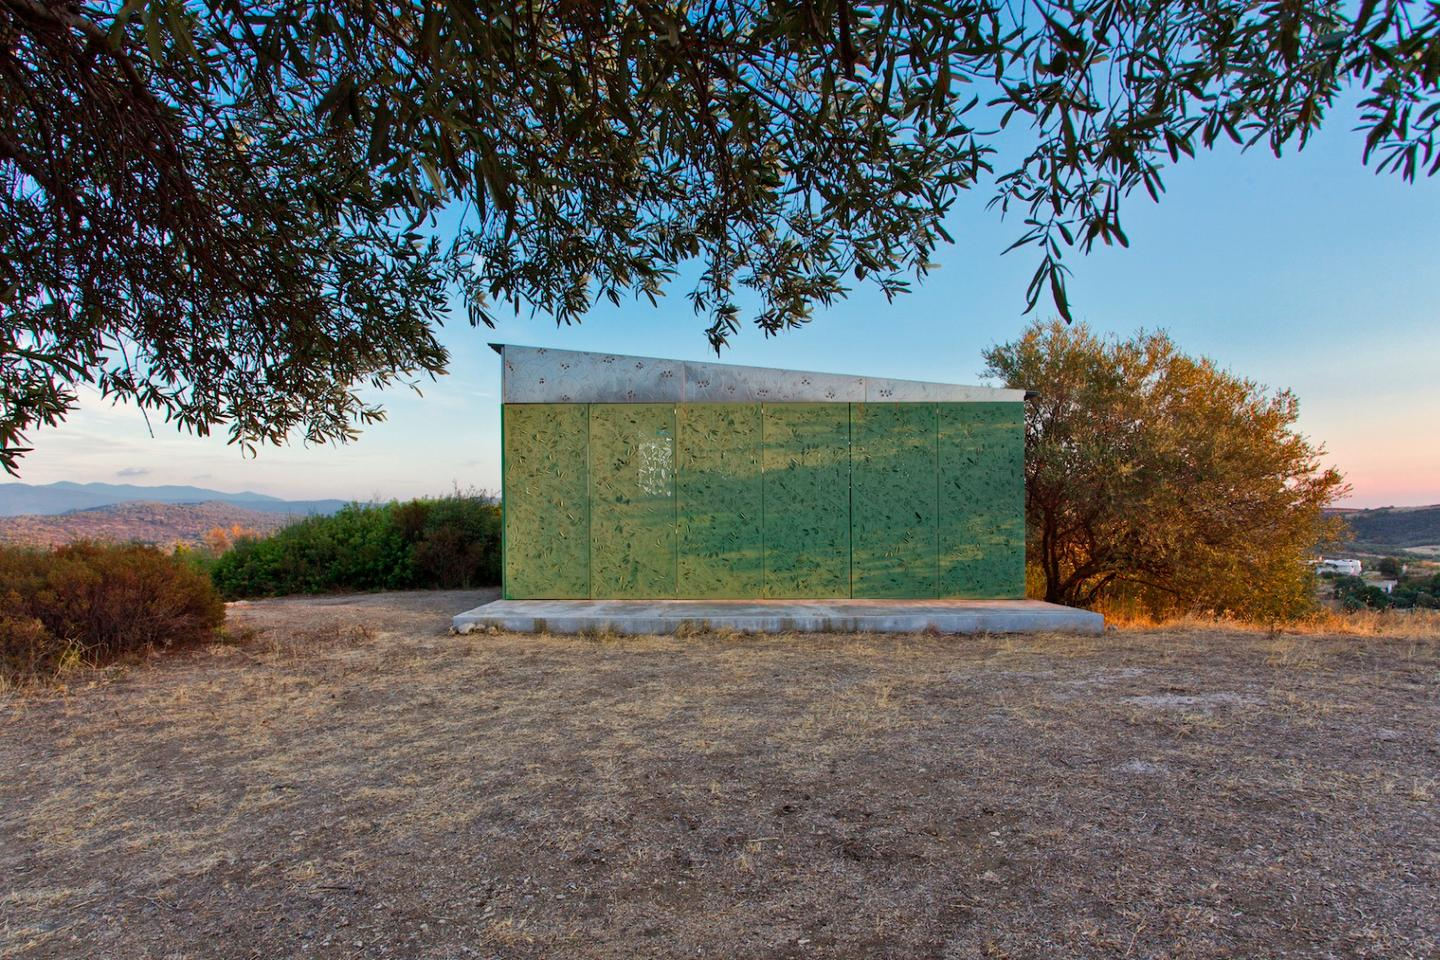 The Olive Tree House is located on a hill overlooking the sea in Halkidiki, Greece